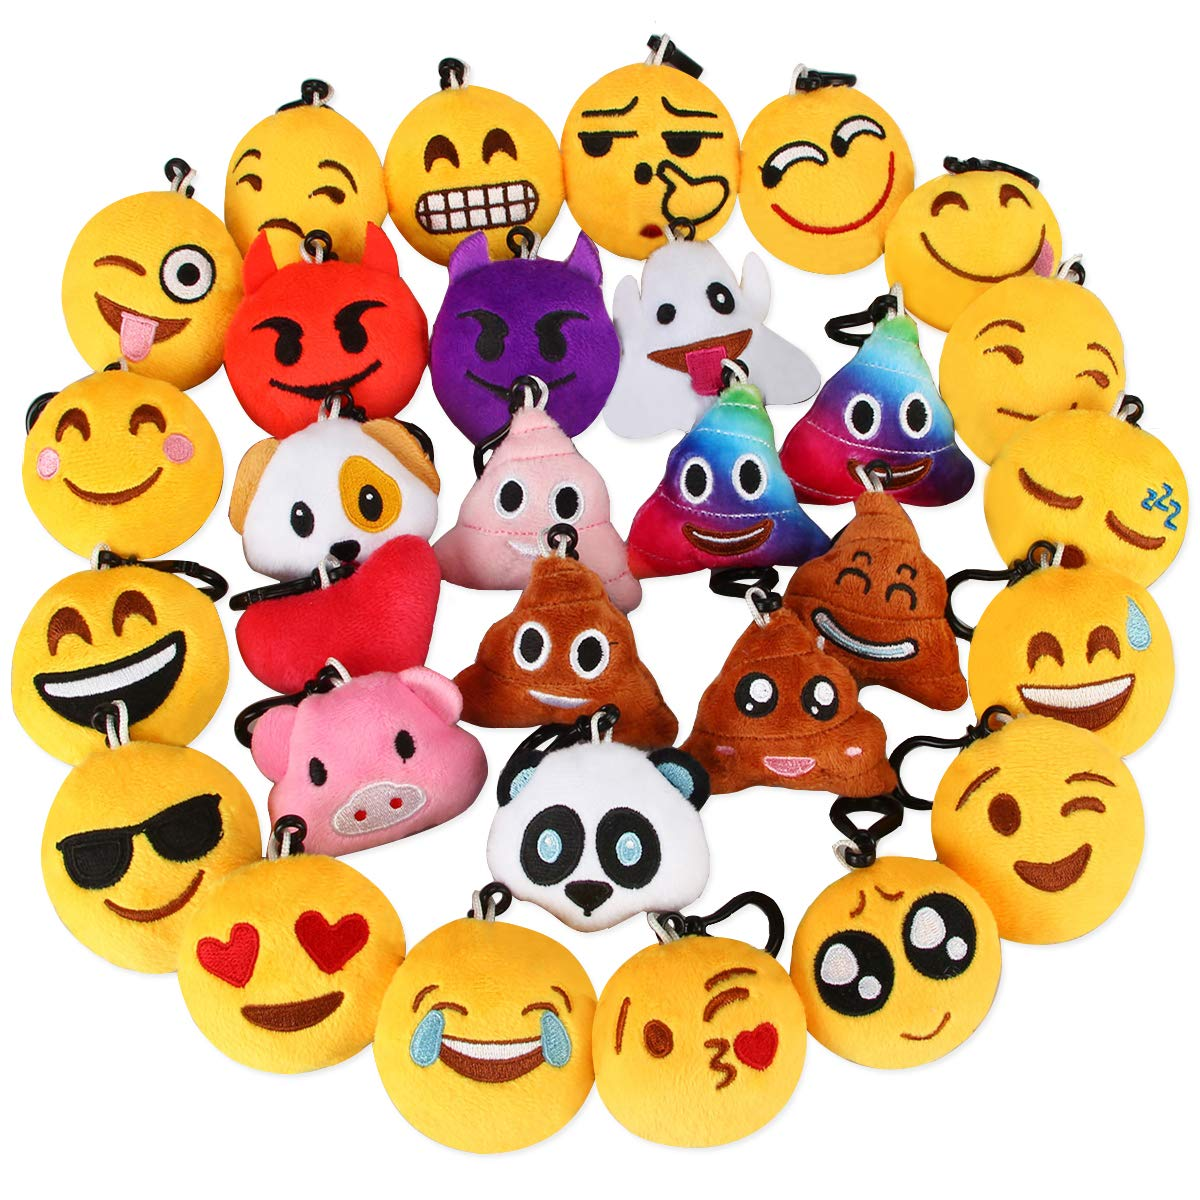 Emoji Keychains Plush, Dreampark Mini Emoji Pillows 30 Pack, Kids Party Favors Christmas Supplies, 2